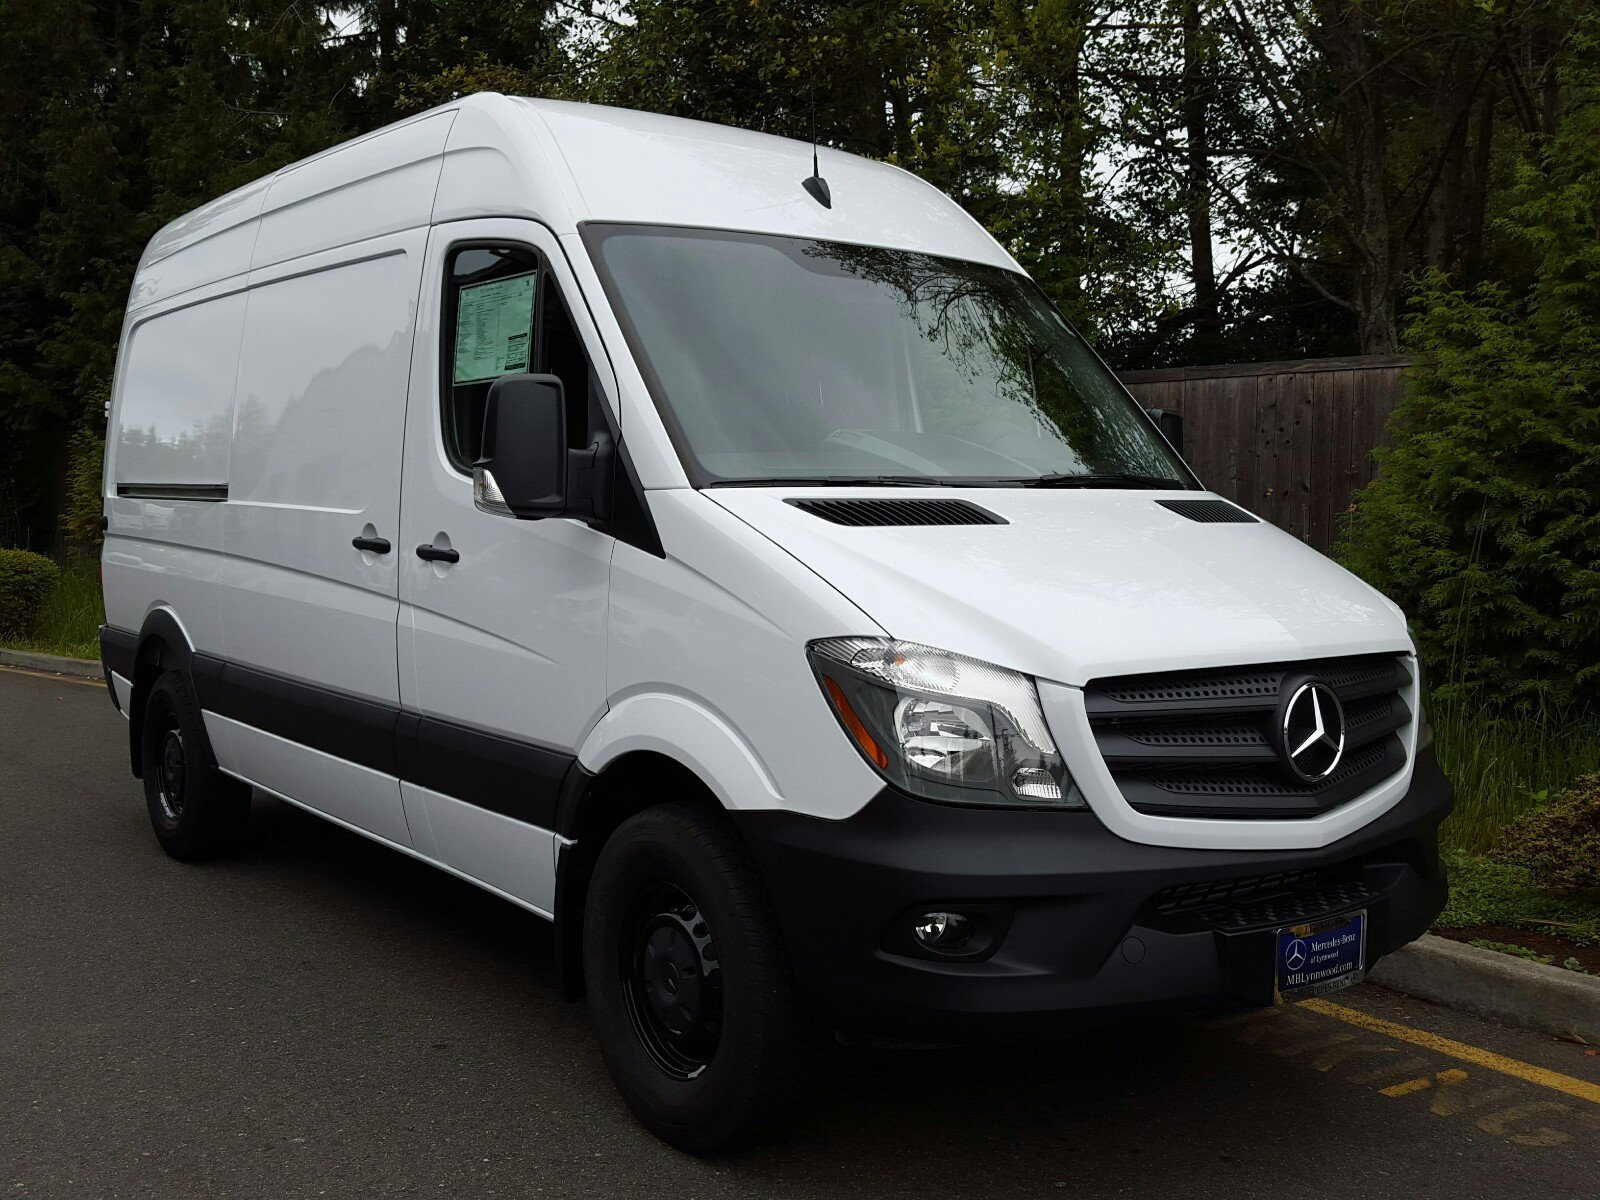 New 2017 mercedes benz sprinter cargo van worker cargo van for New mercedes benz sprinter